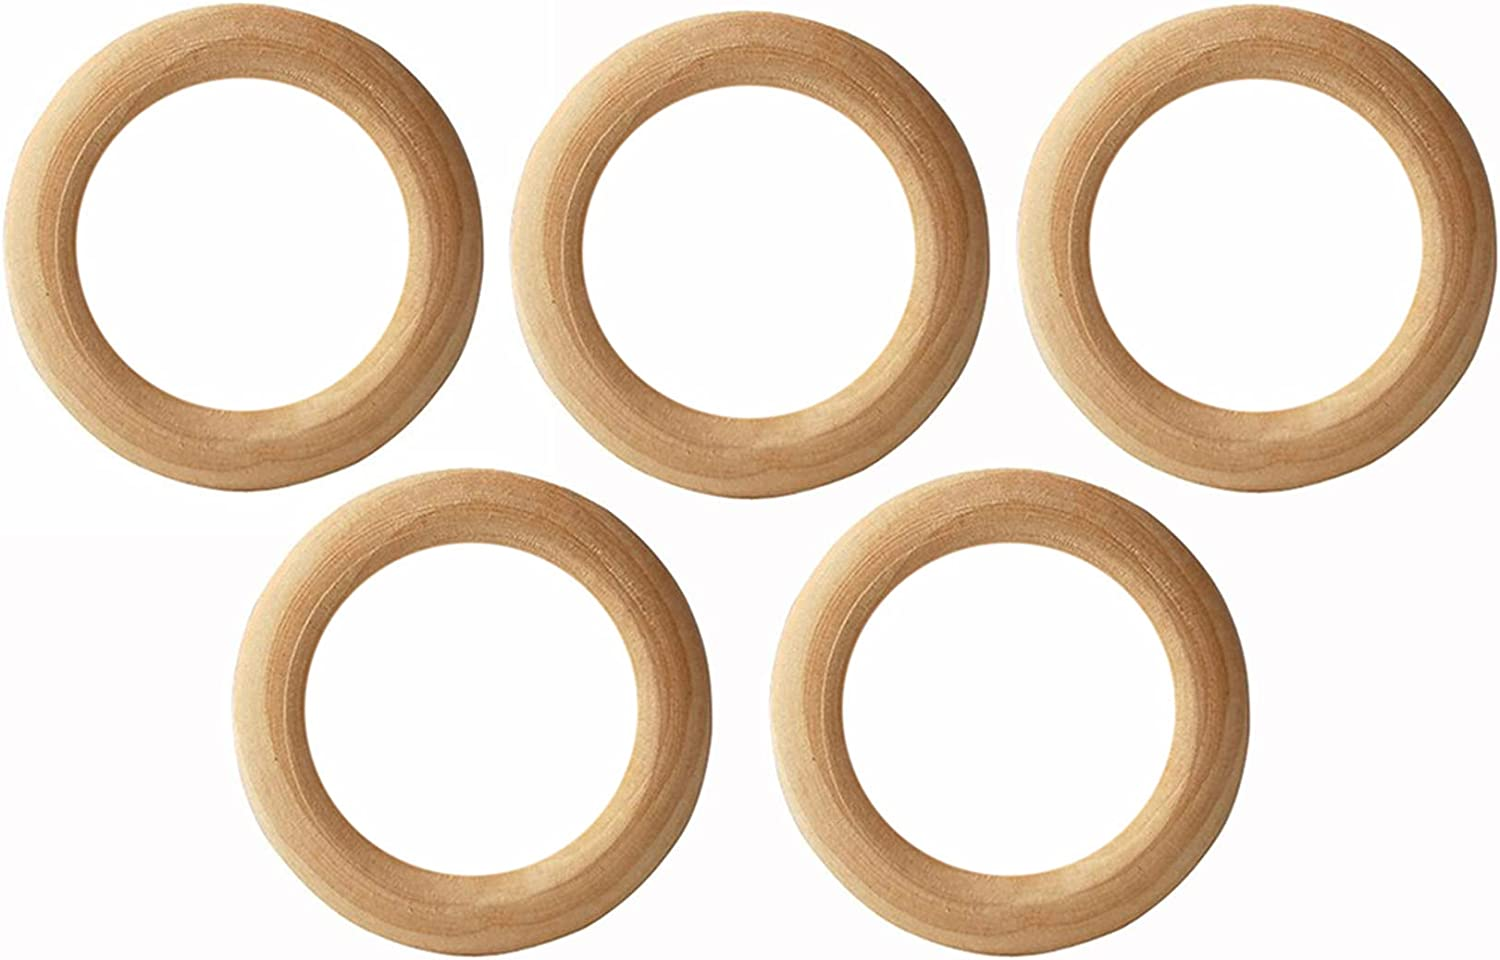 Penta Angel 55mm 10Pcs Natural Wood Rings Unfinished Wooden Loop Circle for DIY Project Pendant Connectors Art Craft Jewelry Making 55mm